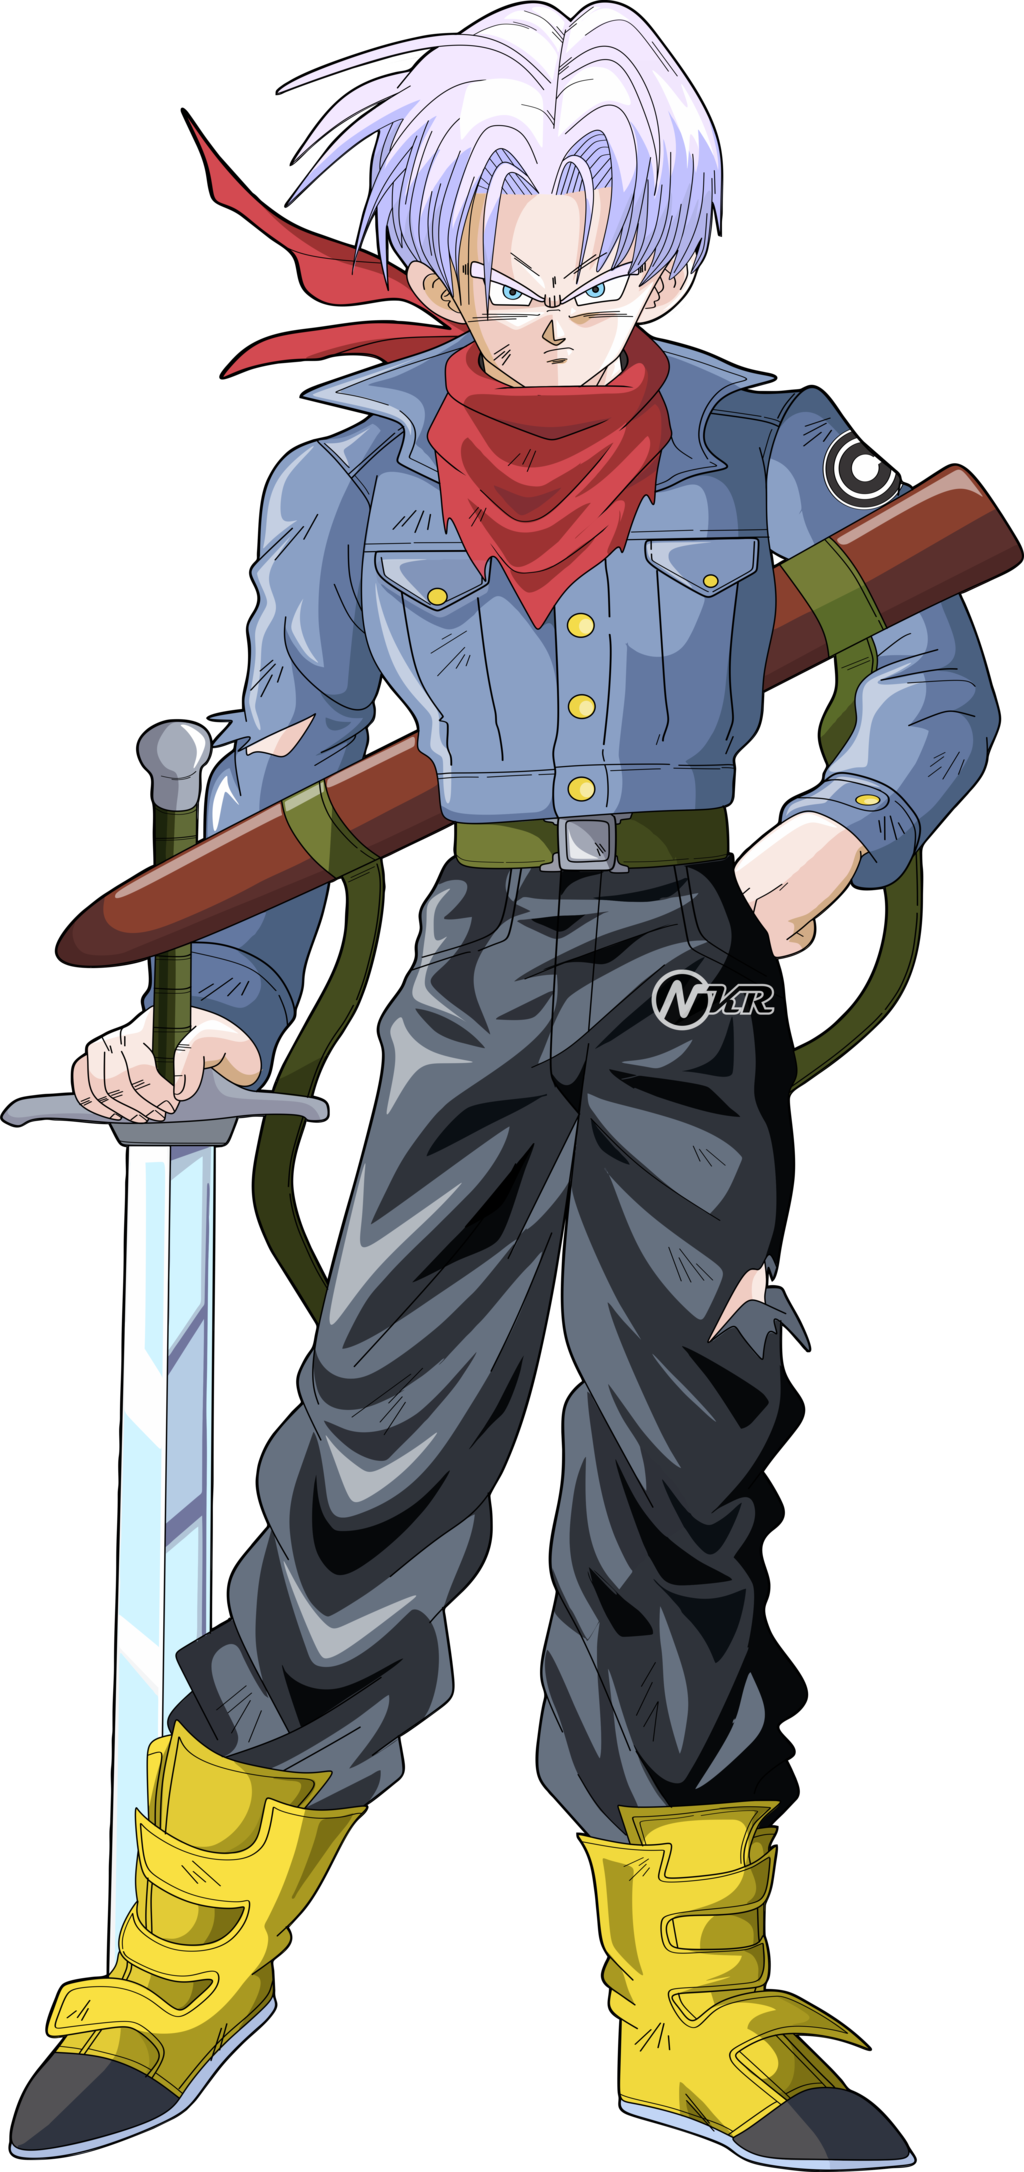 Trunks Del Futuro Dragon Ball Super By Naironkr On Deviantart Dragon Ball Dragon Ball Super Dragon Ball Z